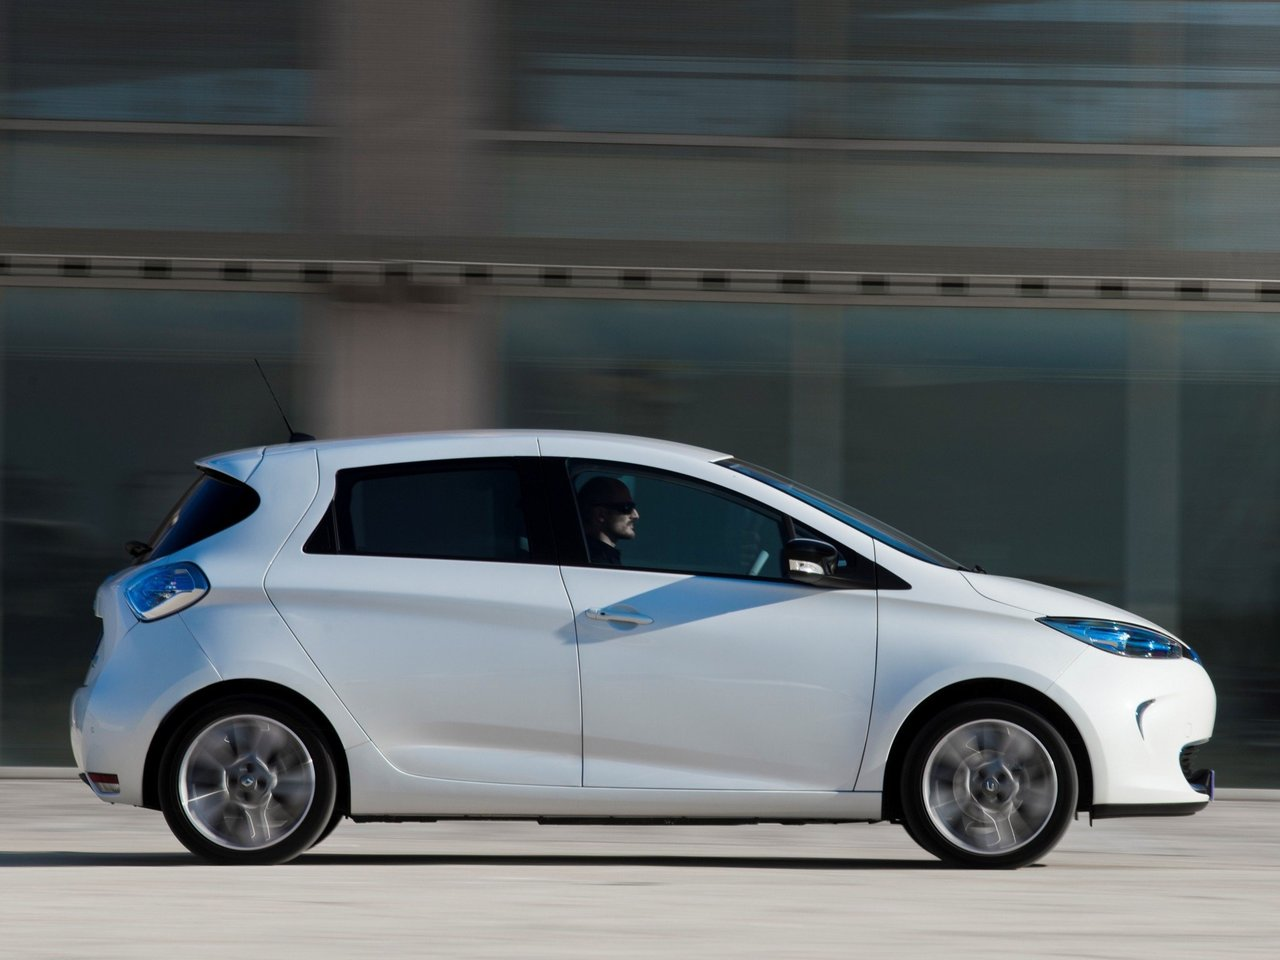 Le Meilleur Renault Zoe Technical Specifications And Fuel Economy Ce Mois Ci